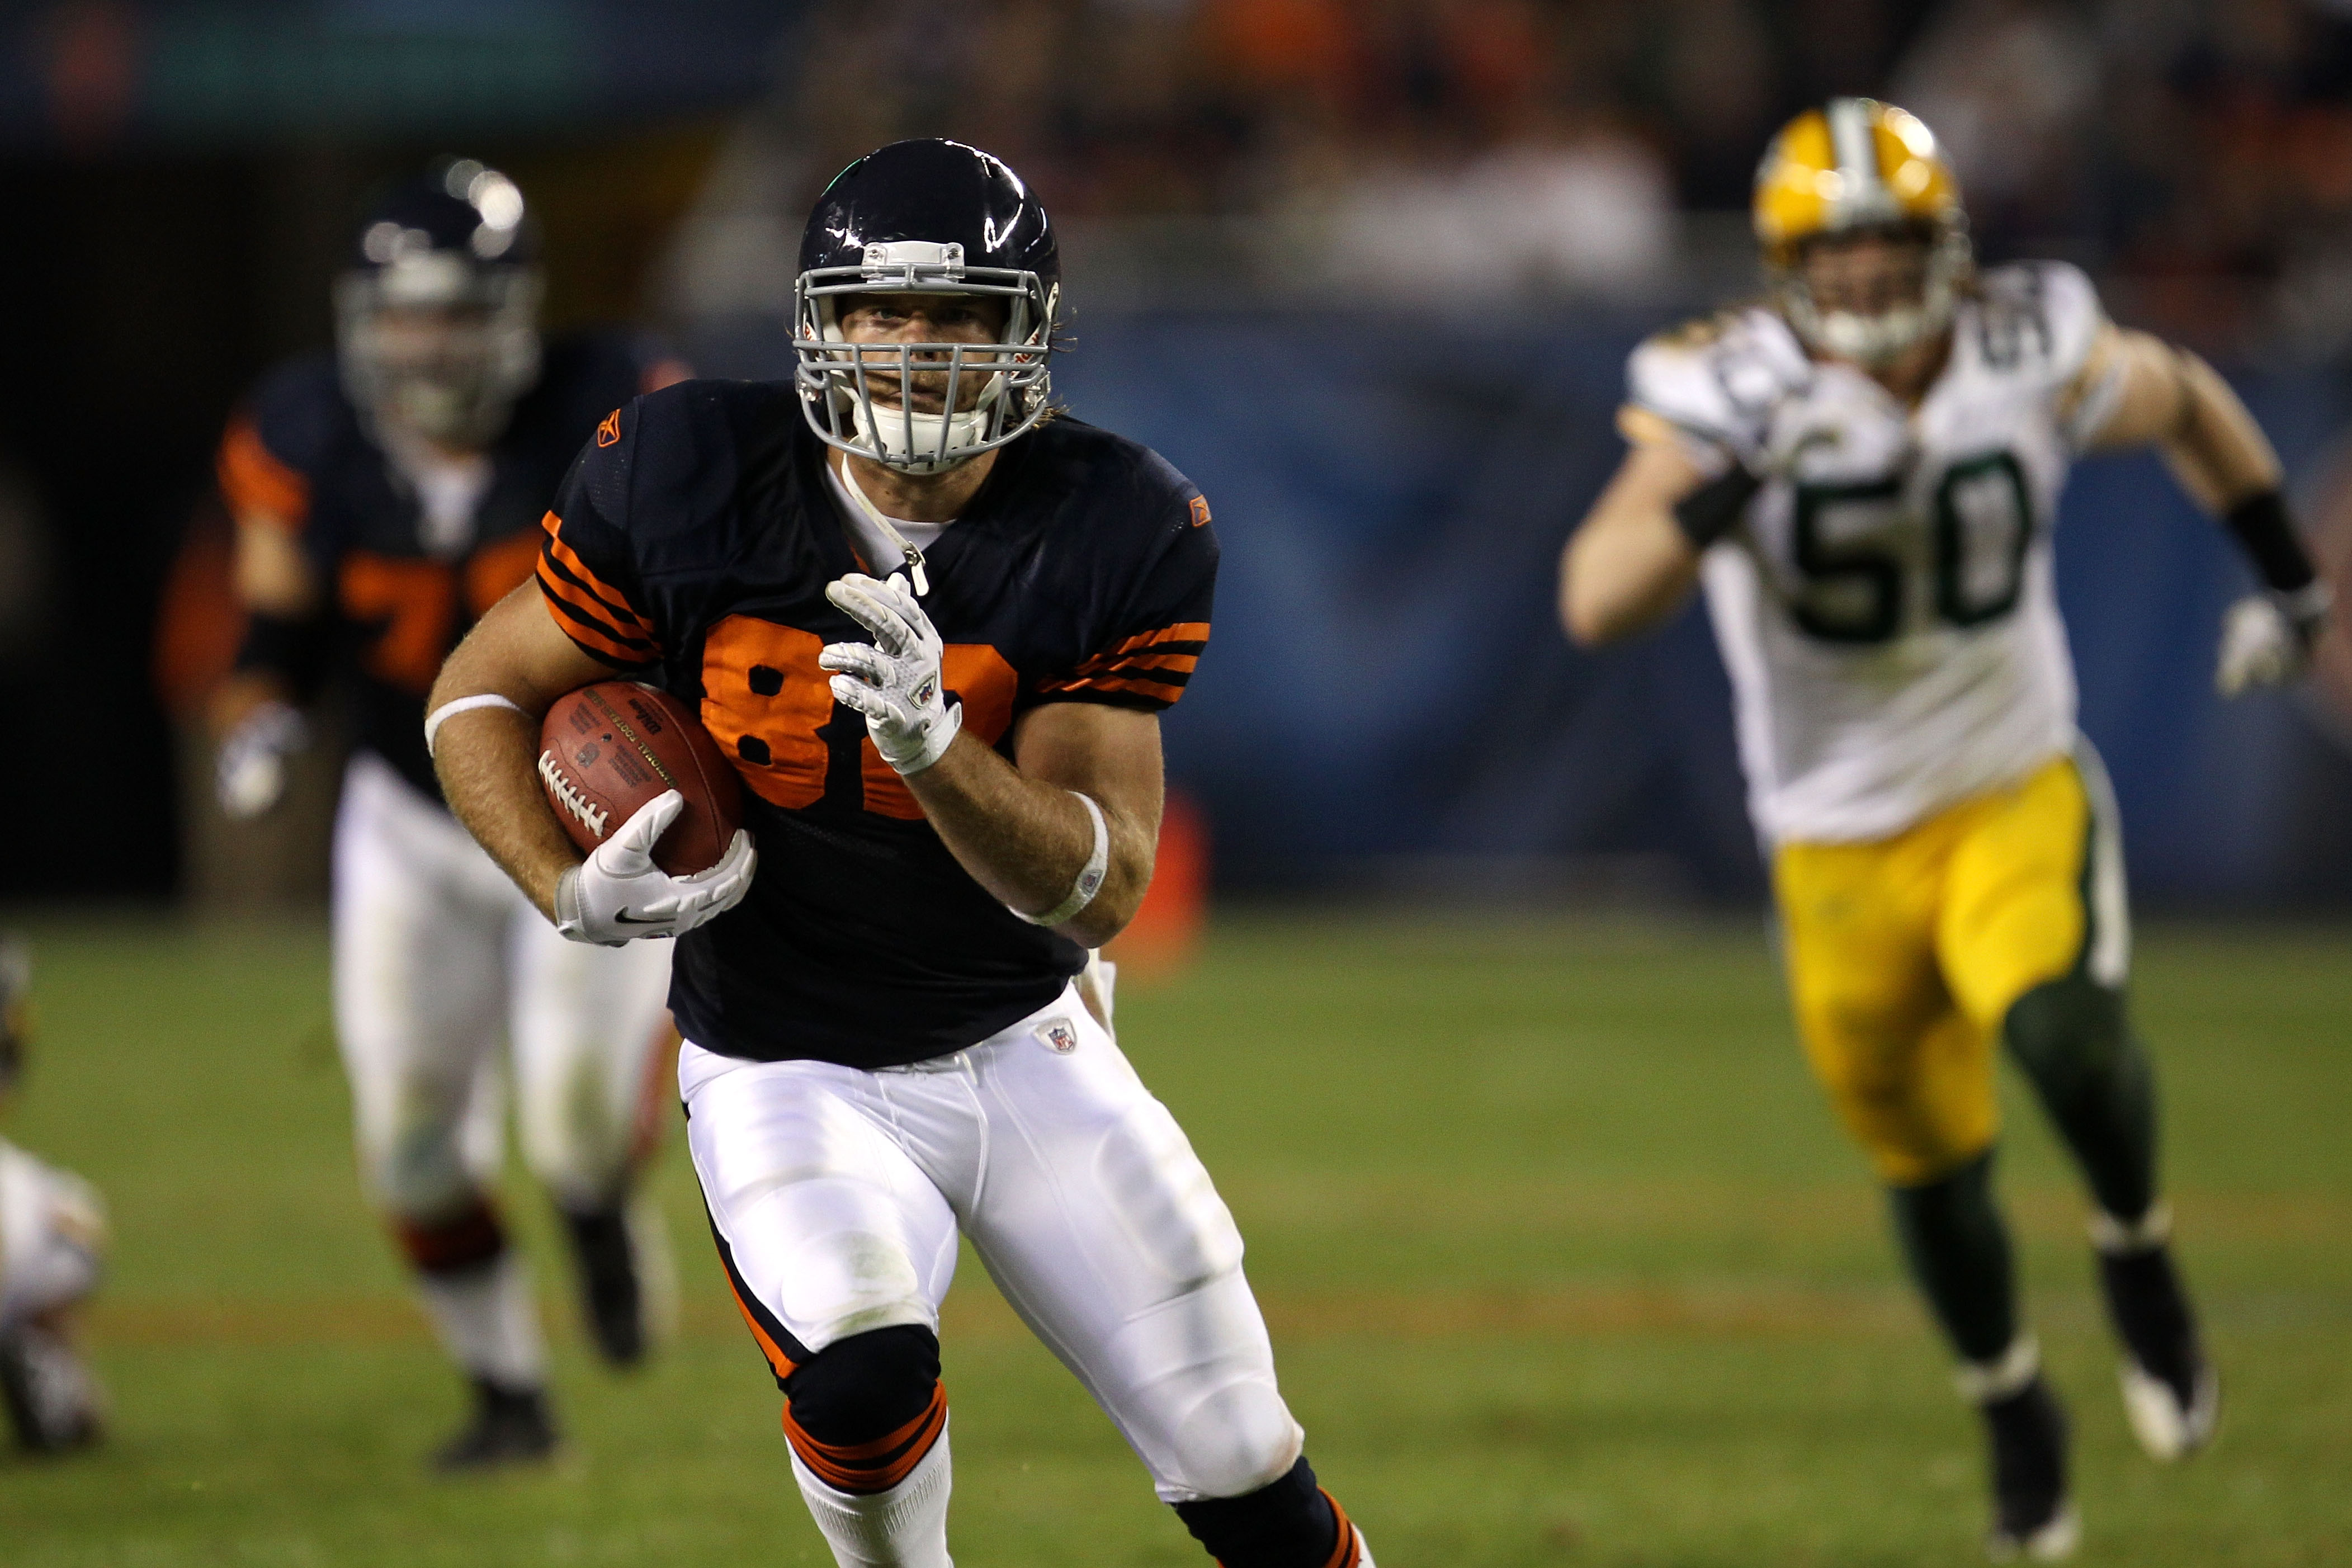 CHICAGO - SEPTEMBER 27:  Greg Olsen #82 of the Chicago Bears runs for yards after the catch against A.J. Hawk #50 of the Green Bay Packers at Soldier Field on September 27, 2010 in Chicago, Illinois. The Bears won 20-17.  (Photo by Jonathan Daniel/Getty I